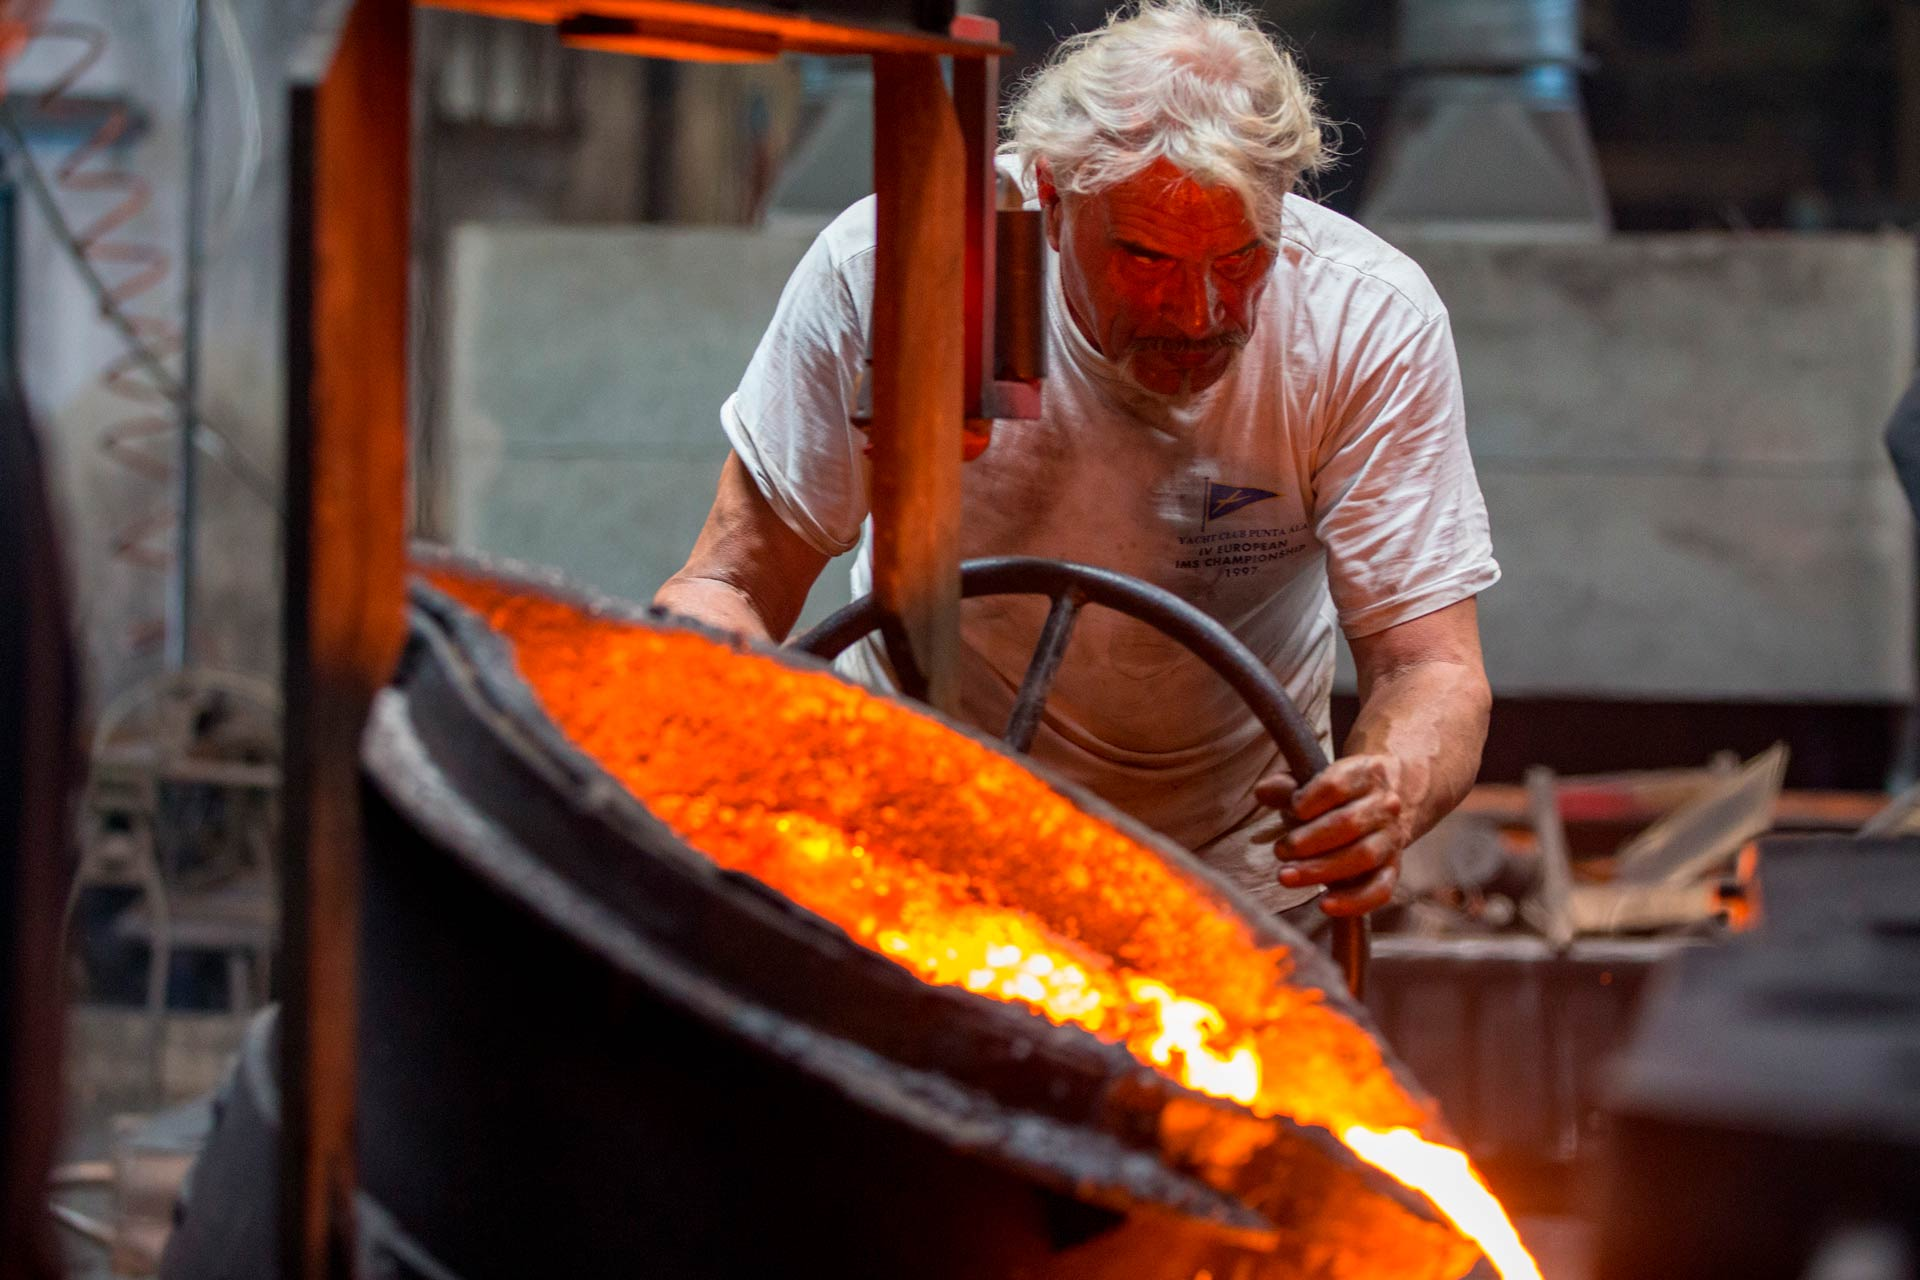 To ensure the production of high quality cast iron castings, the whole process of working the cast iron is followed step by step by Omero himself.